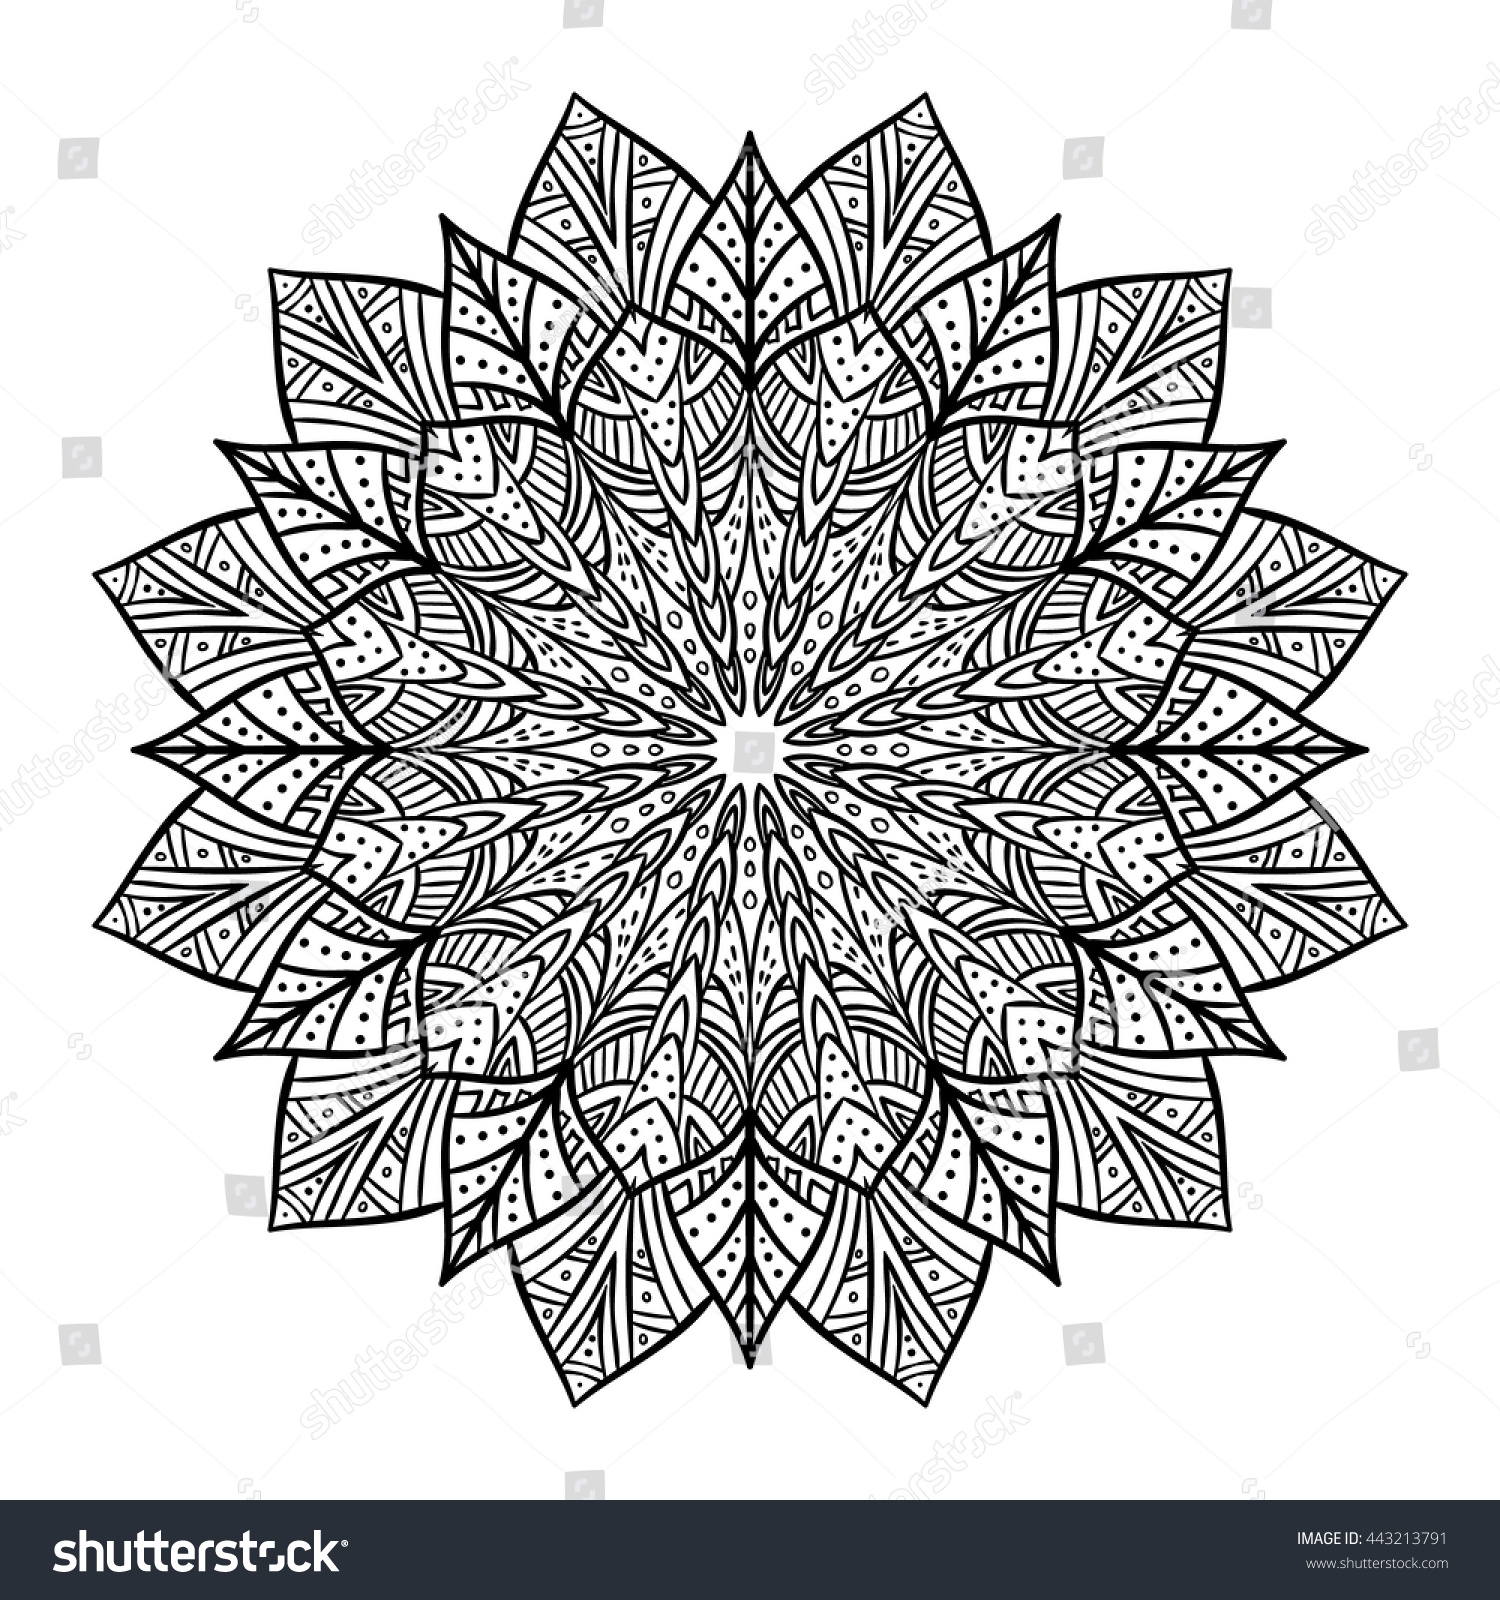 vector doodle flower mandala coloring book for adult and childrencoloring page outline - Mandala Coloring Books For Adults